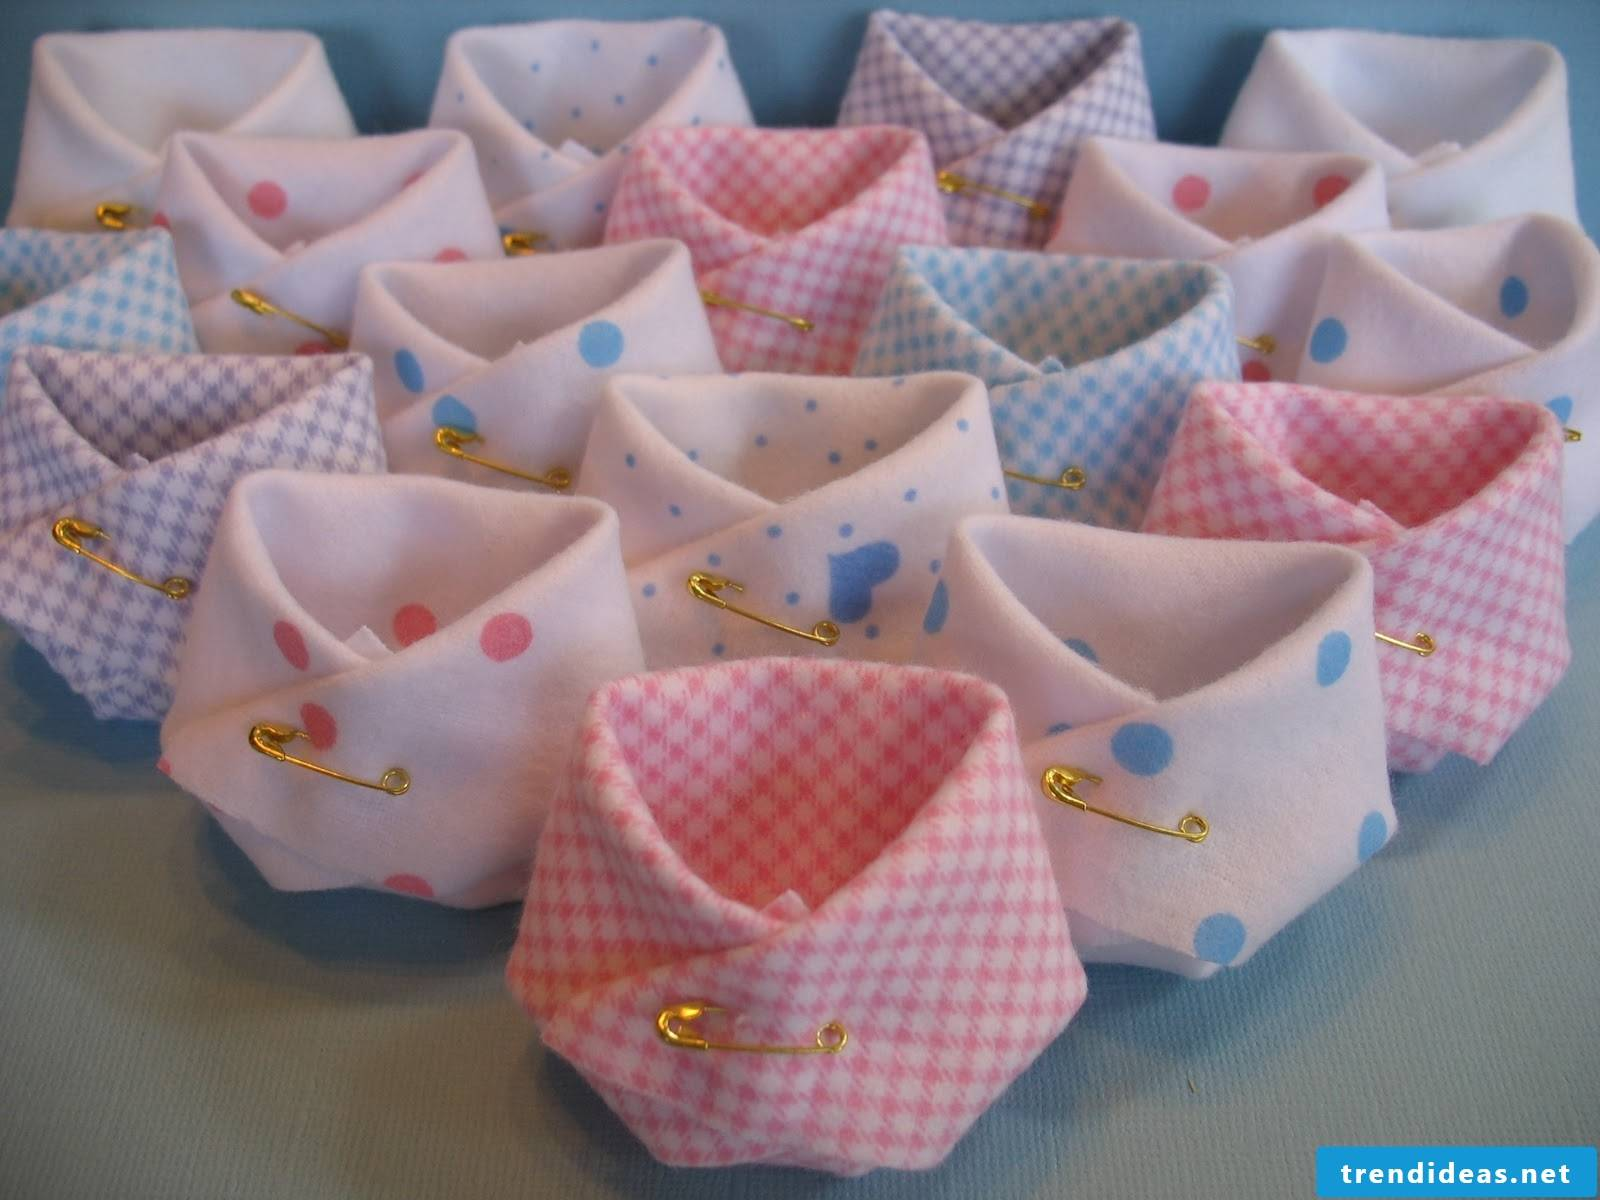 Baby diapers made of folded paper and several great ideas can be found here!